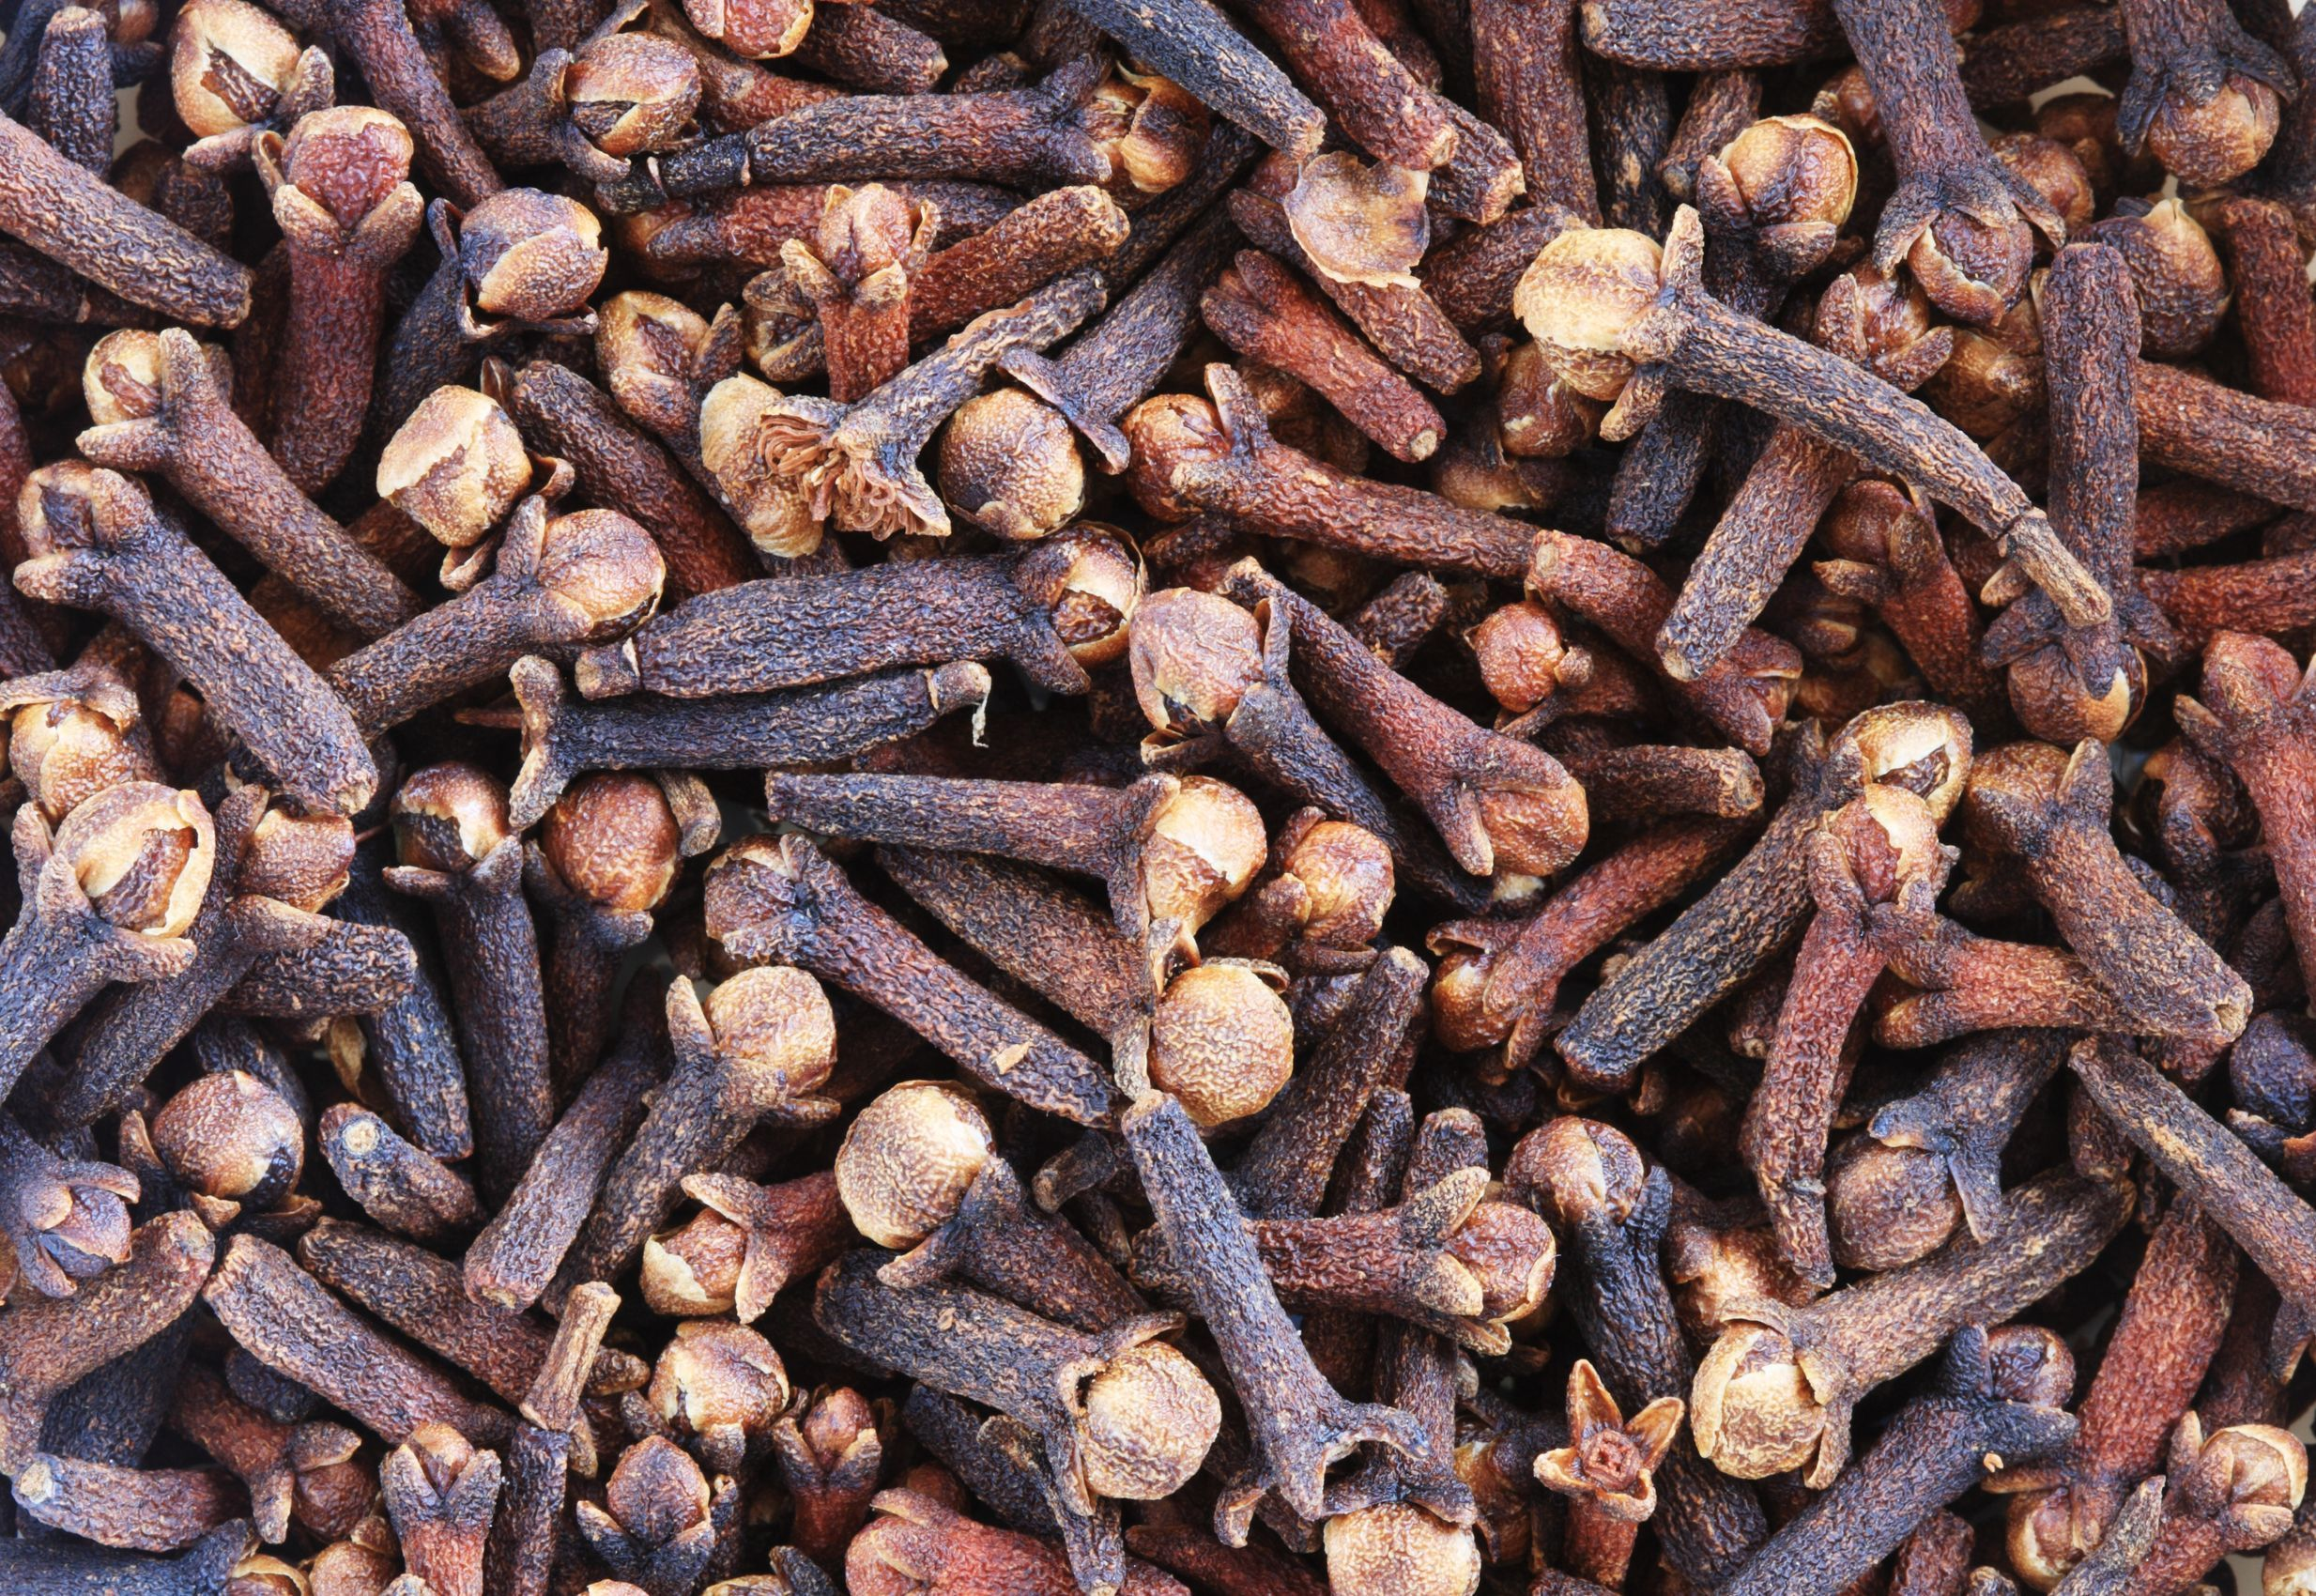 Clove Bud Pure Essential Oil with Analysis Report